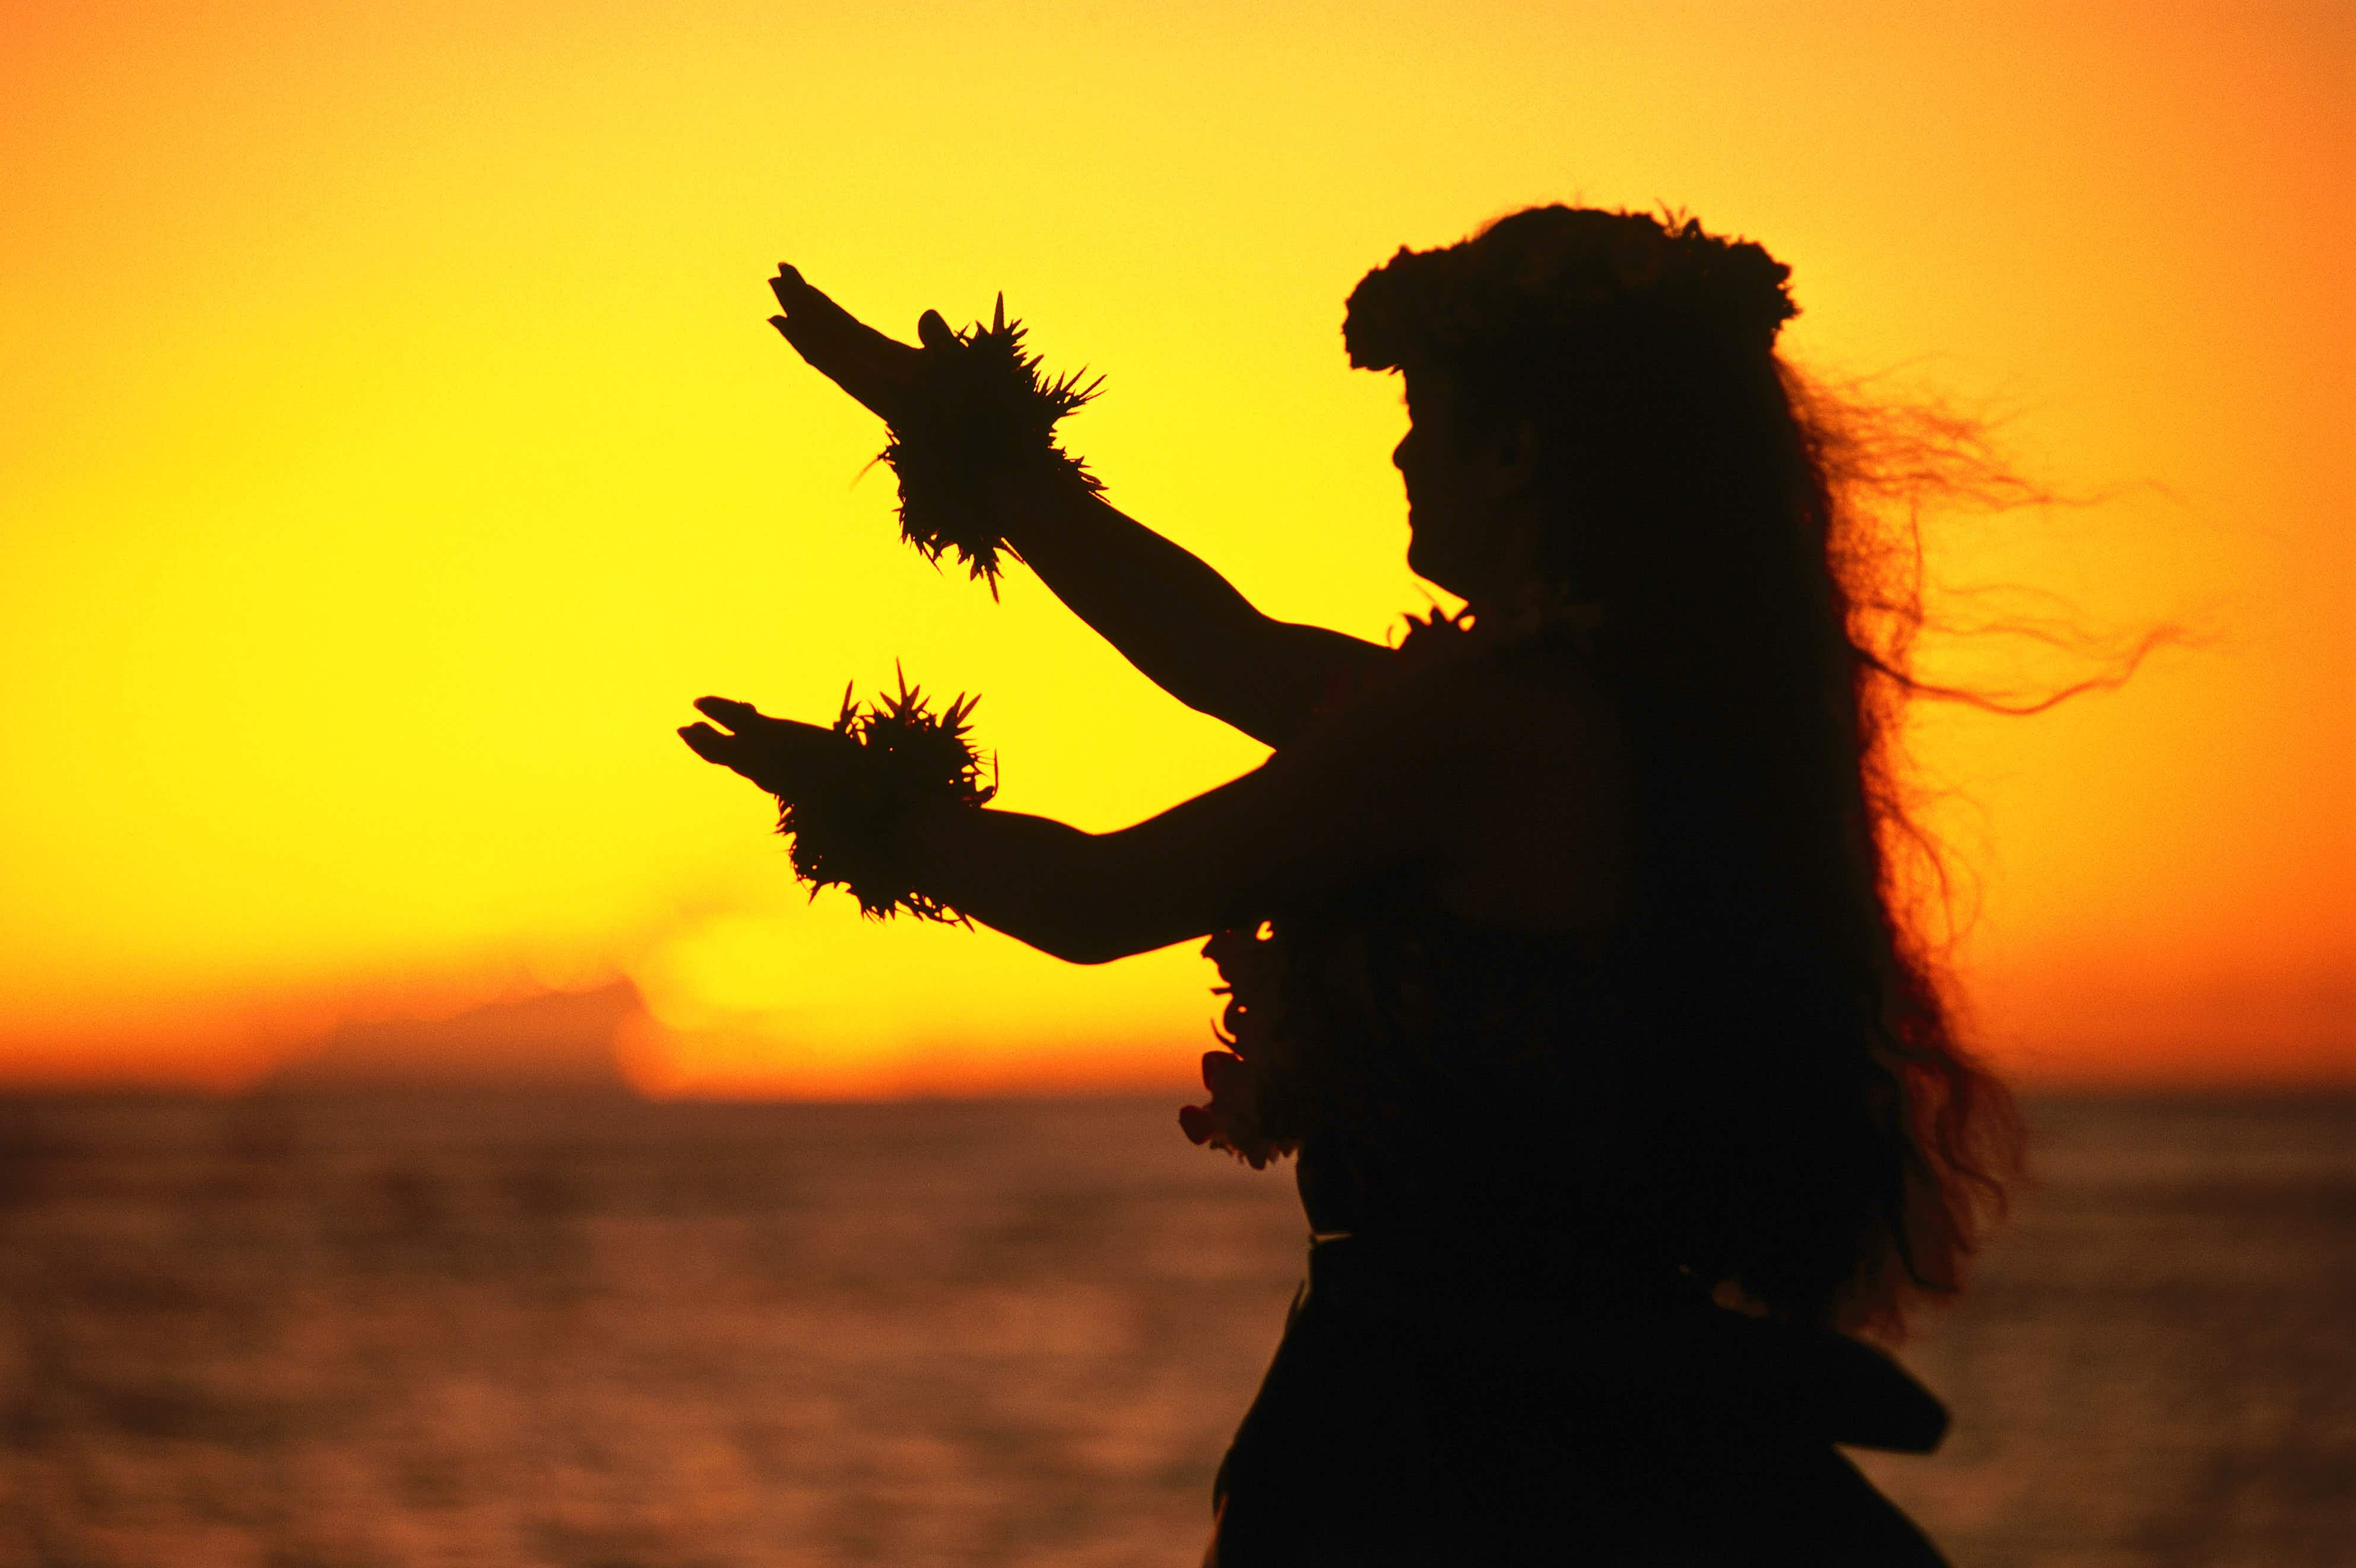 Getting in touch with traditional Hawaiian culture